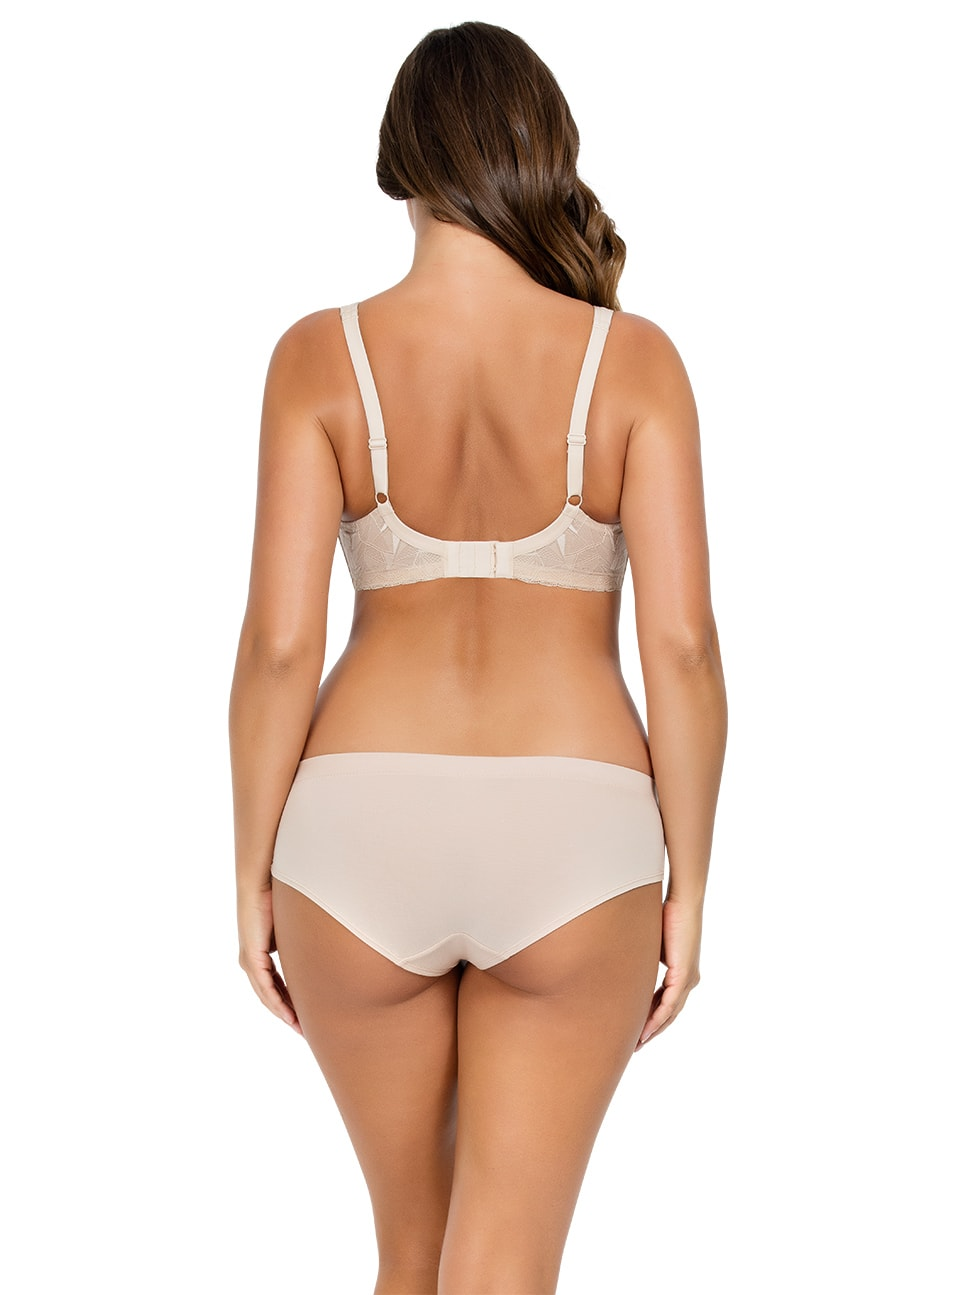 PARFAIT Leila NursingBraPNB502 Bare Back copy - Leila Nursing Bra- Bare - NB502